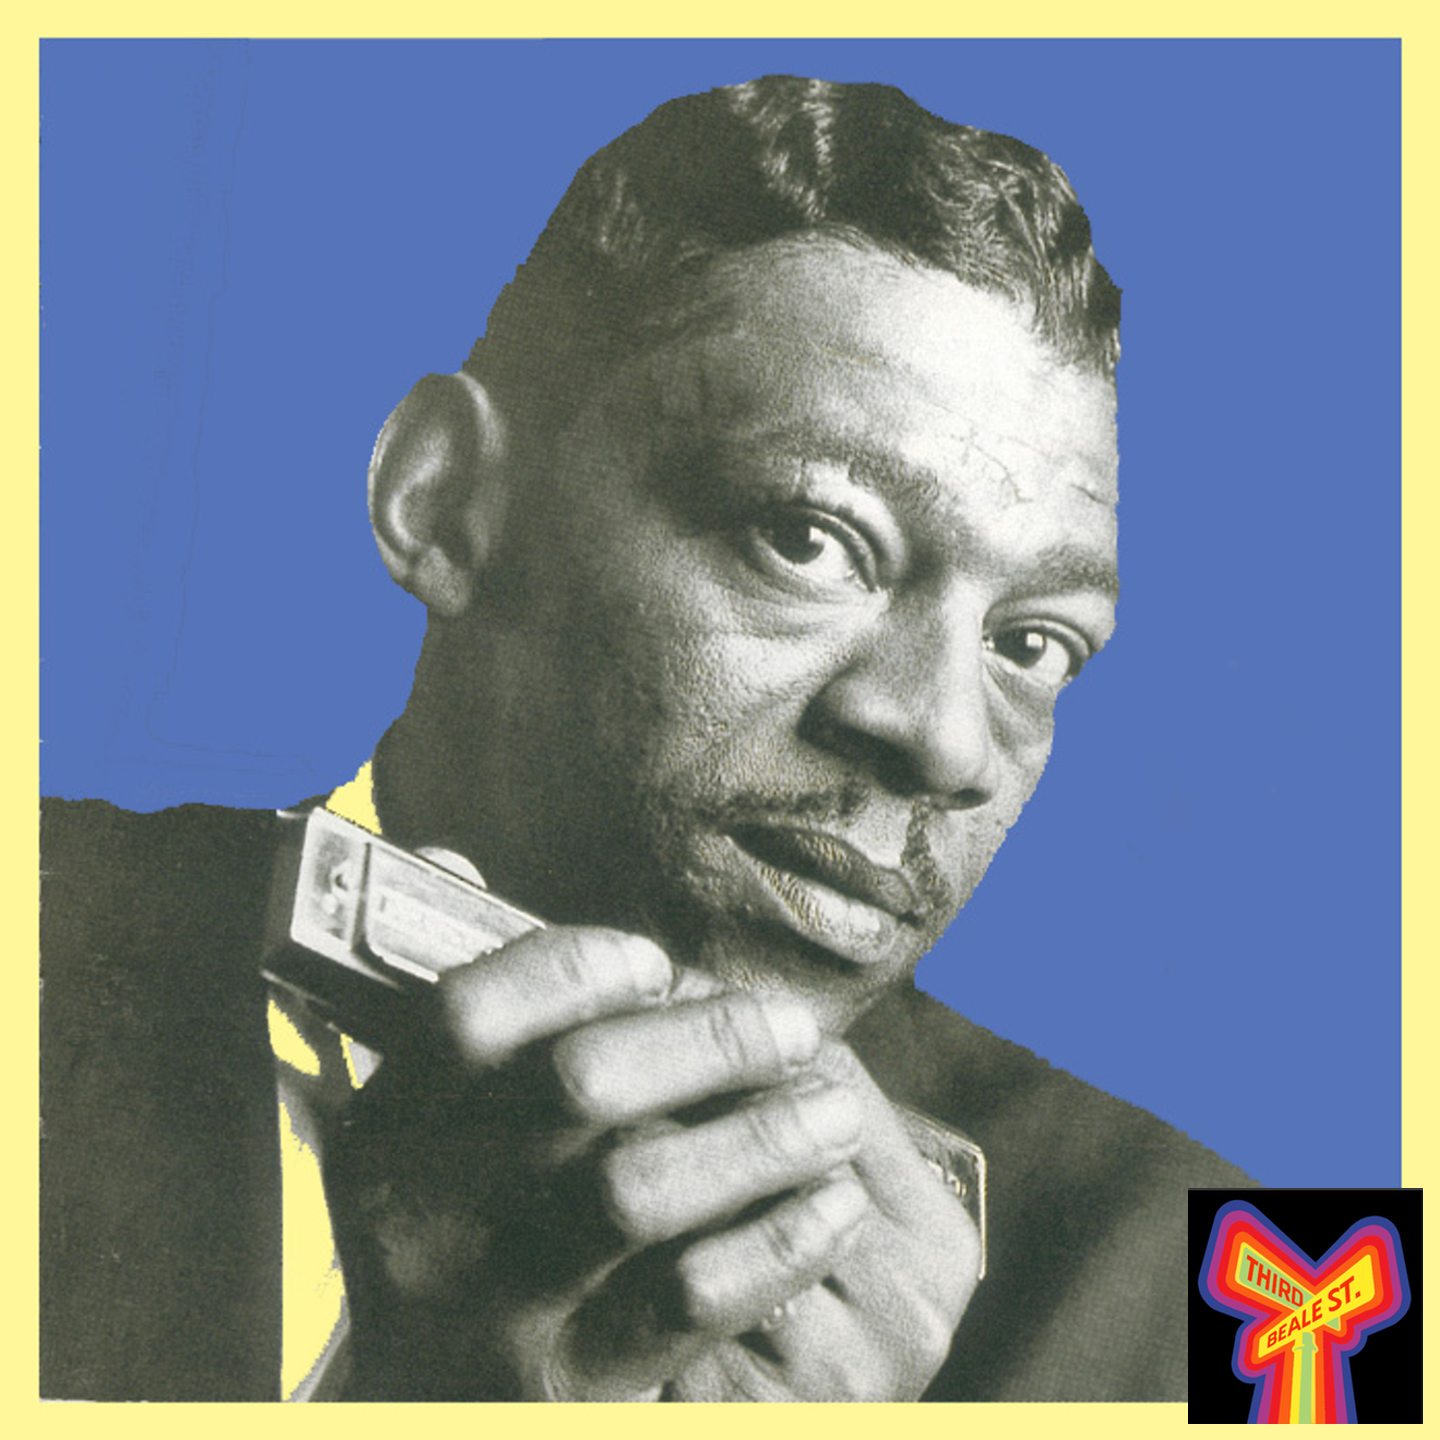 Caption: Little Walter, the King of Chicago Blues Harmonica.